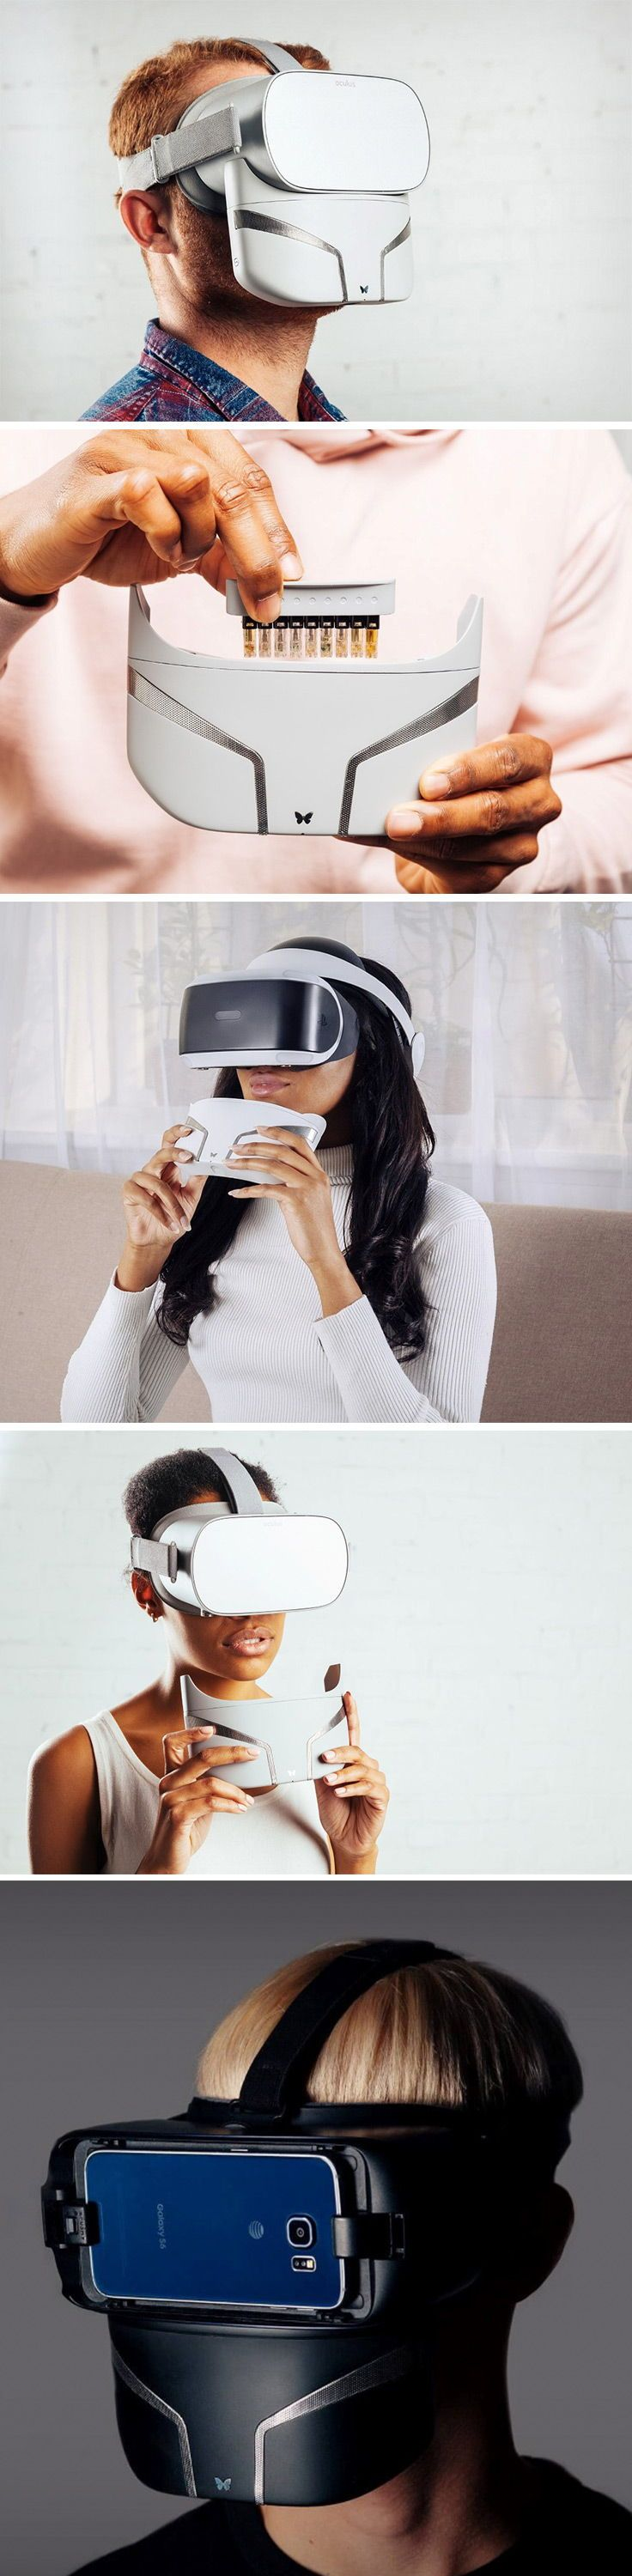 The Feelreal is an attachment that adds an olfactory element to your VR experience. Compatible with the Oculus Rift, Go, HTC Vive, Samsung Galaxy VR, …